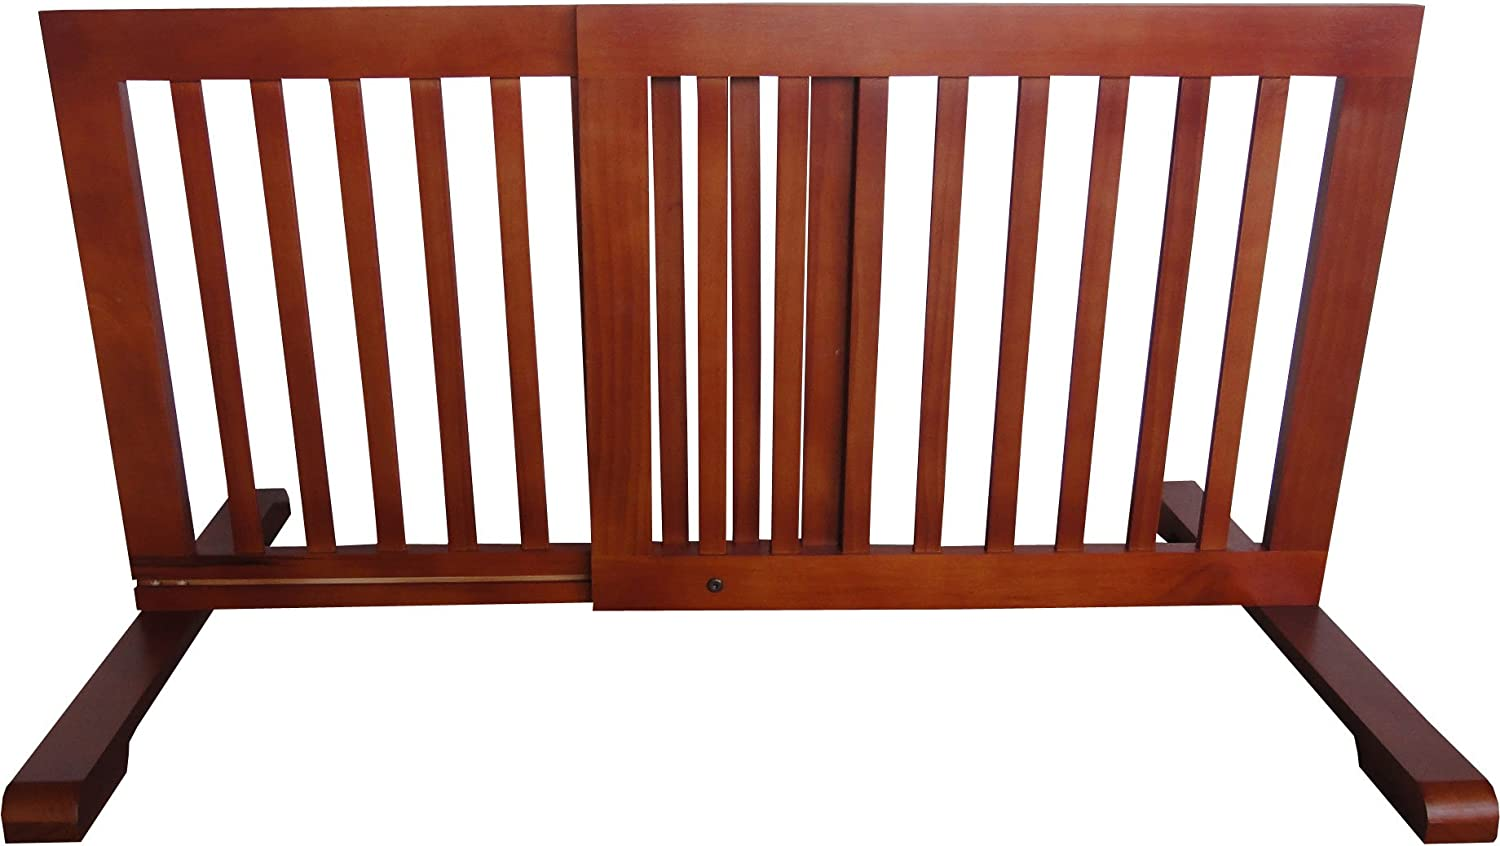 MDOG2 Free Standing Pet Gate, 23.6Inch to 39.4Inch by 20.1Inch by 21.6Inch, Light Oak